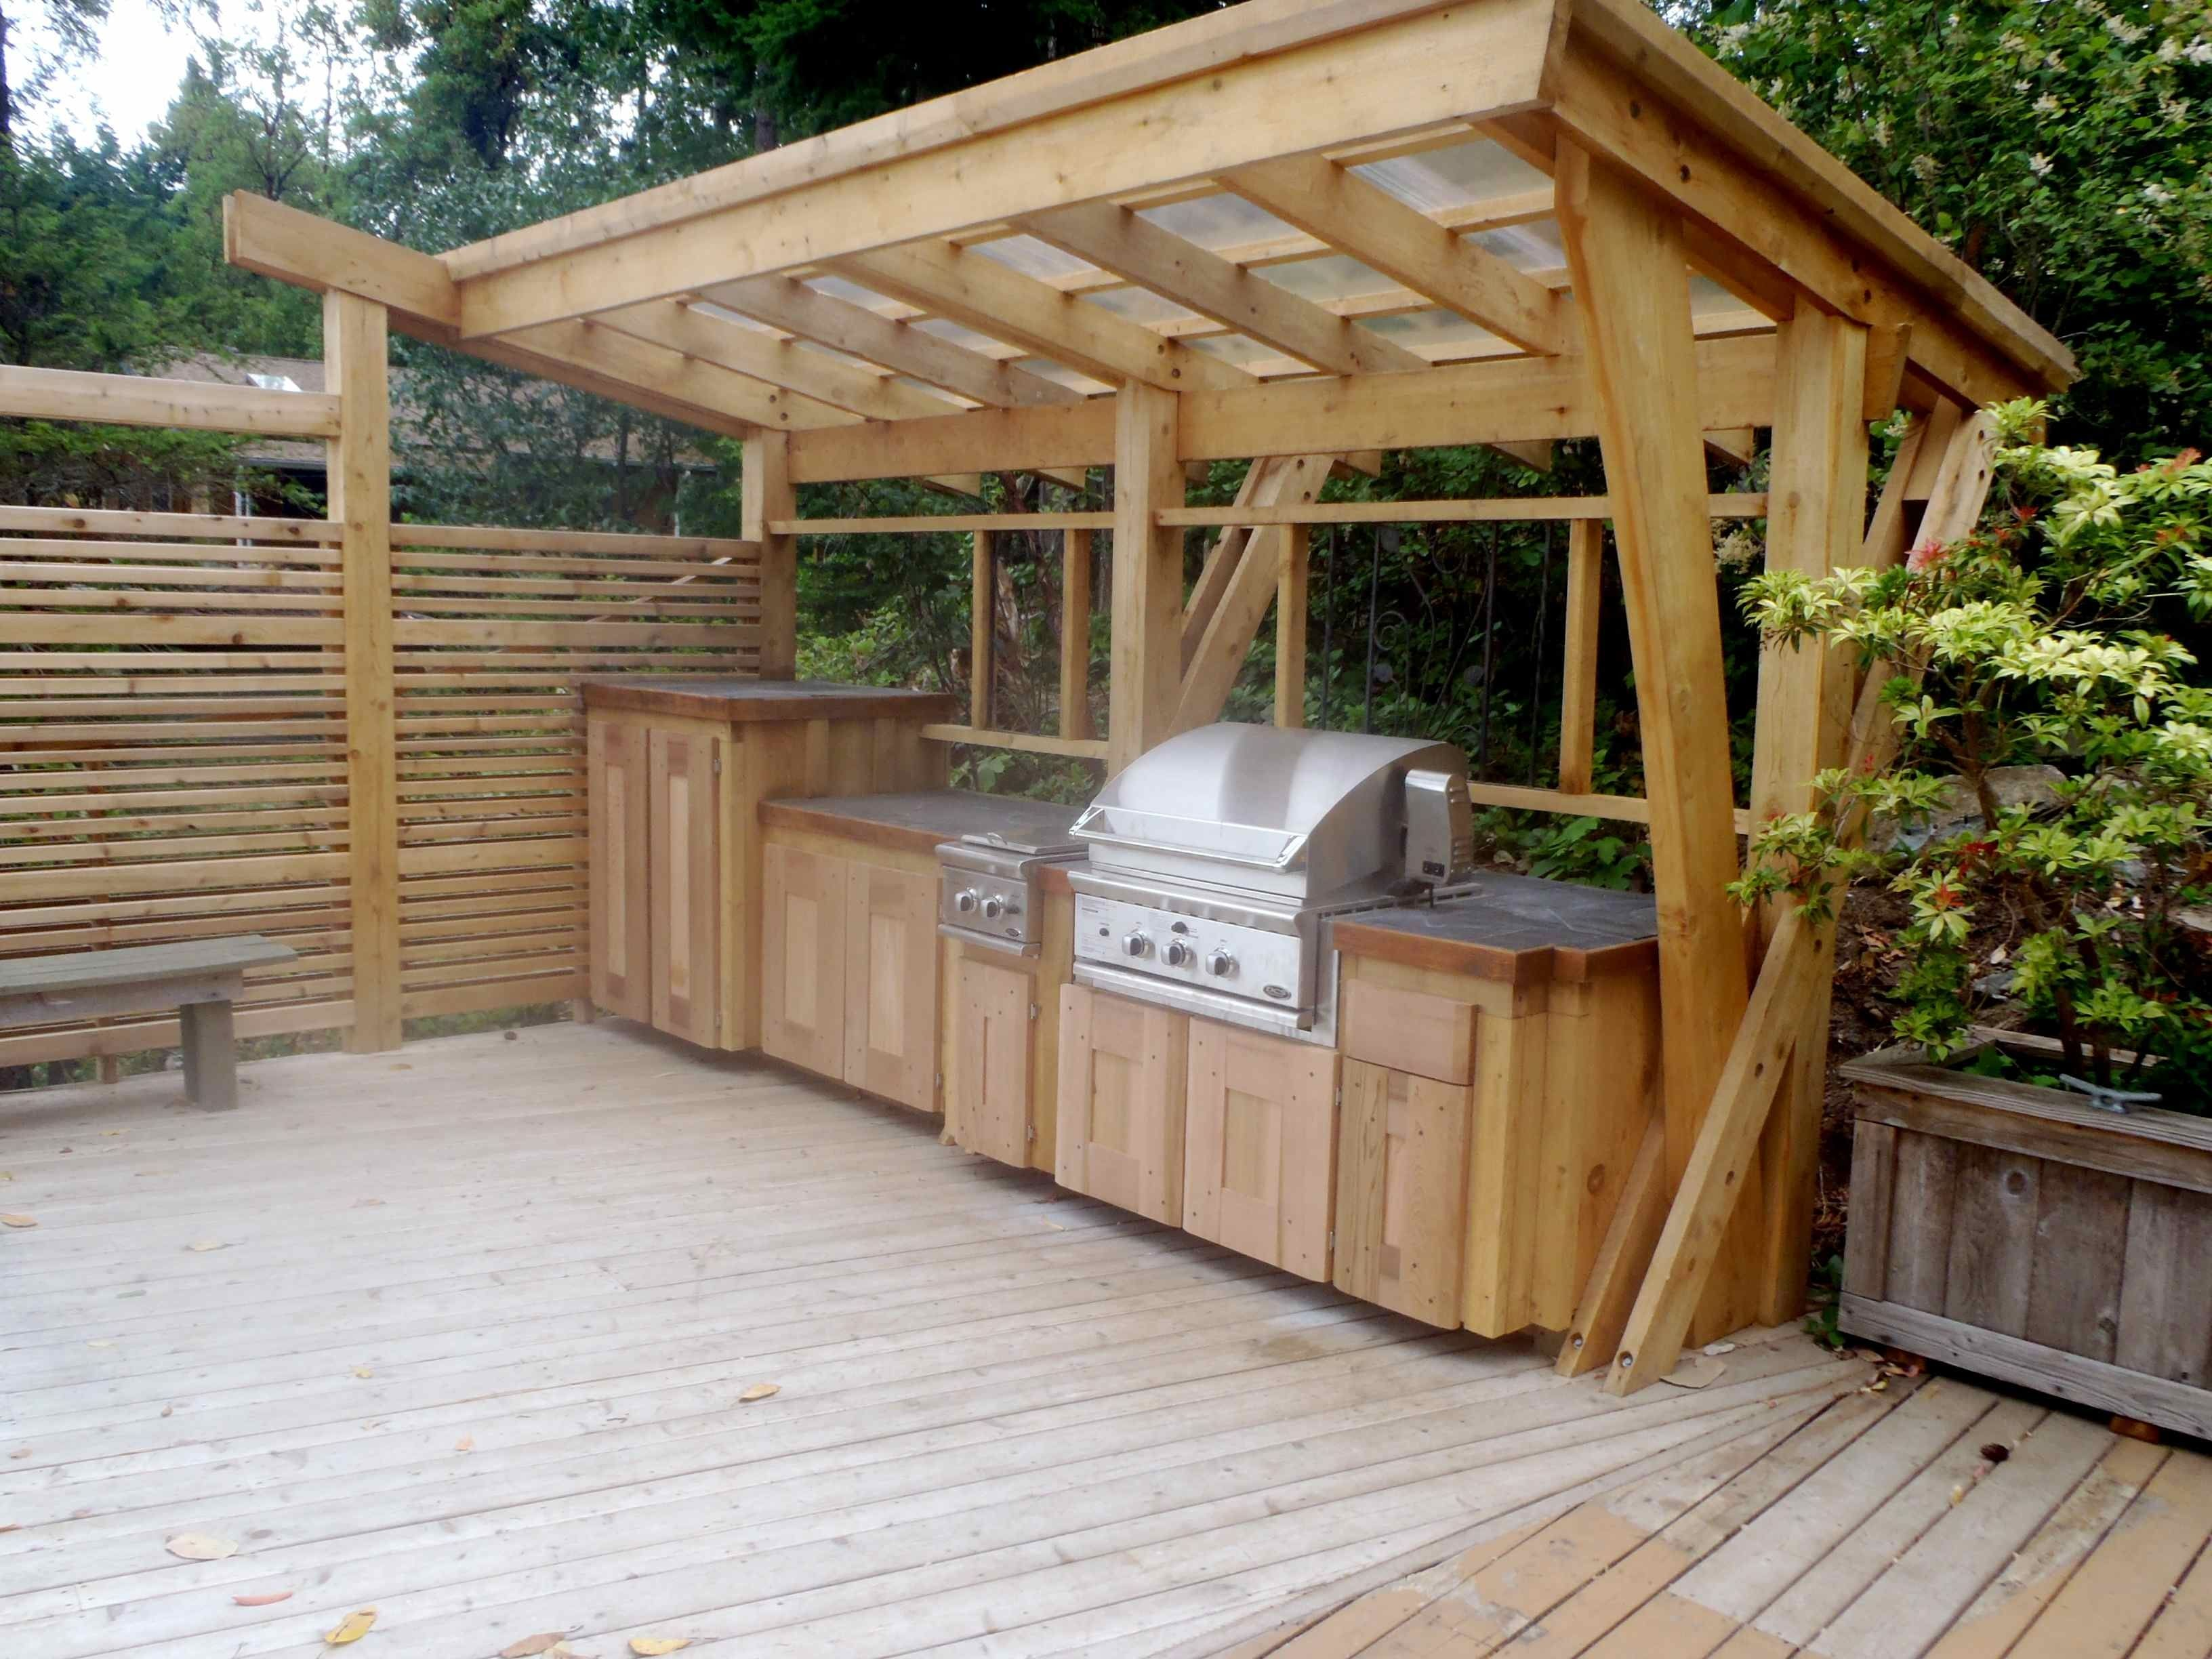 Outdoor Kitchen Roofs Painting Extravagant Porch And Landscape Ideas Outdoor Kitchen Plans Build Outdoor Kitchen Outdoor Kitchen Design